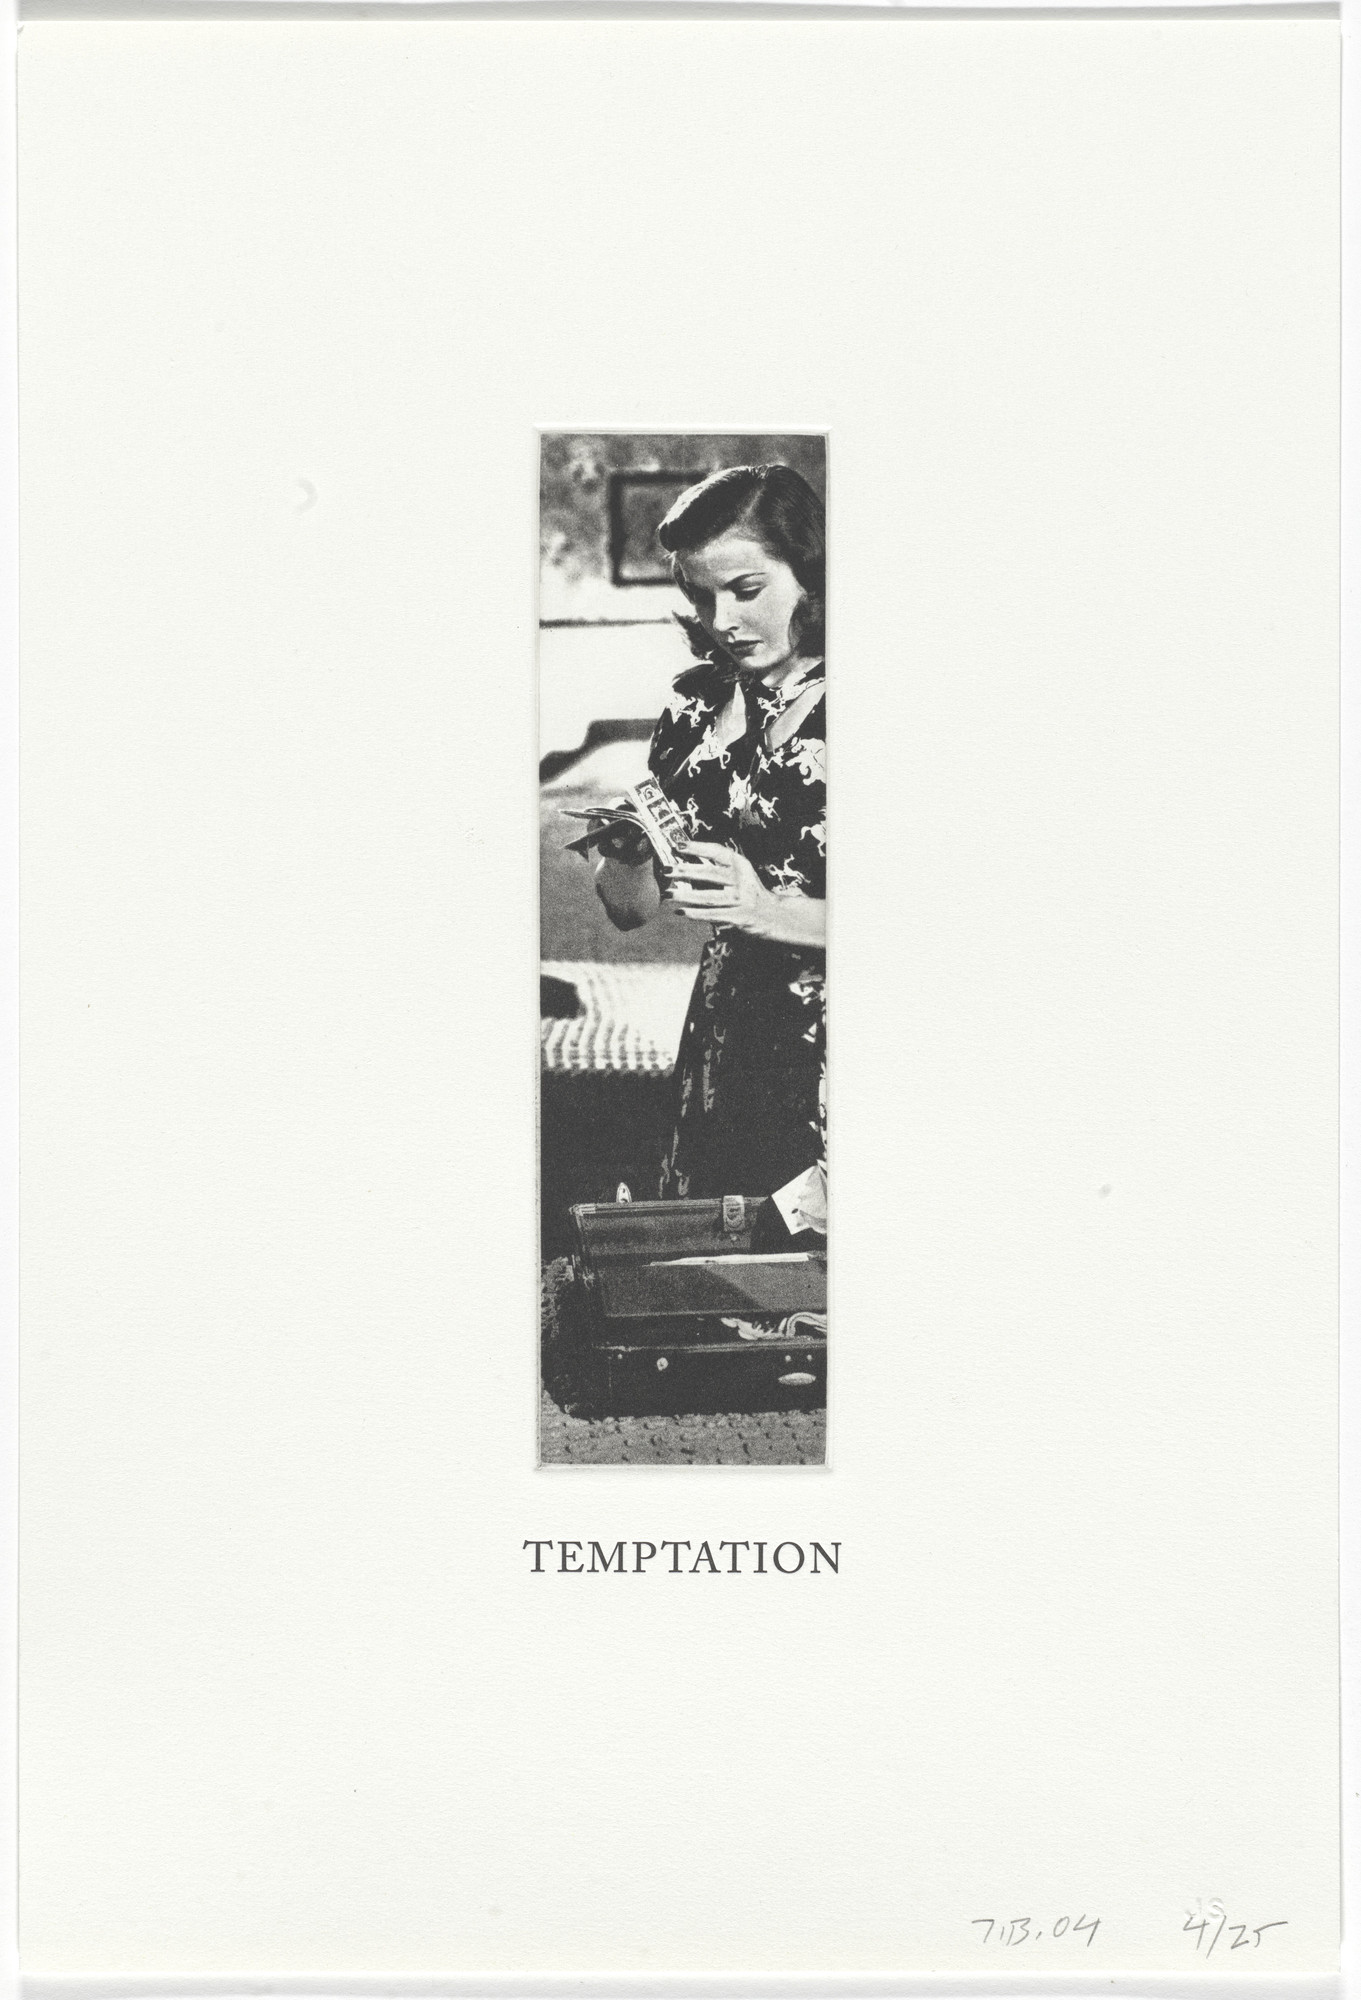 John Baldessari. Temptation from Some Narrow Views: (Either Tall or Wide). 2004